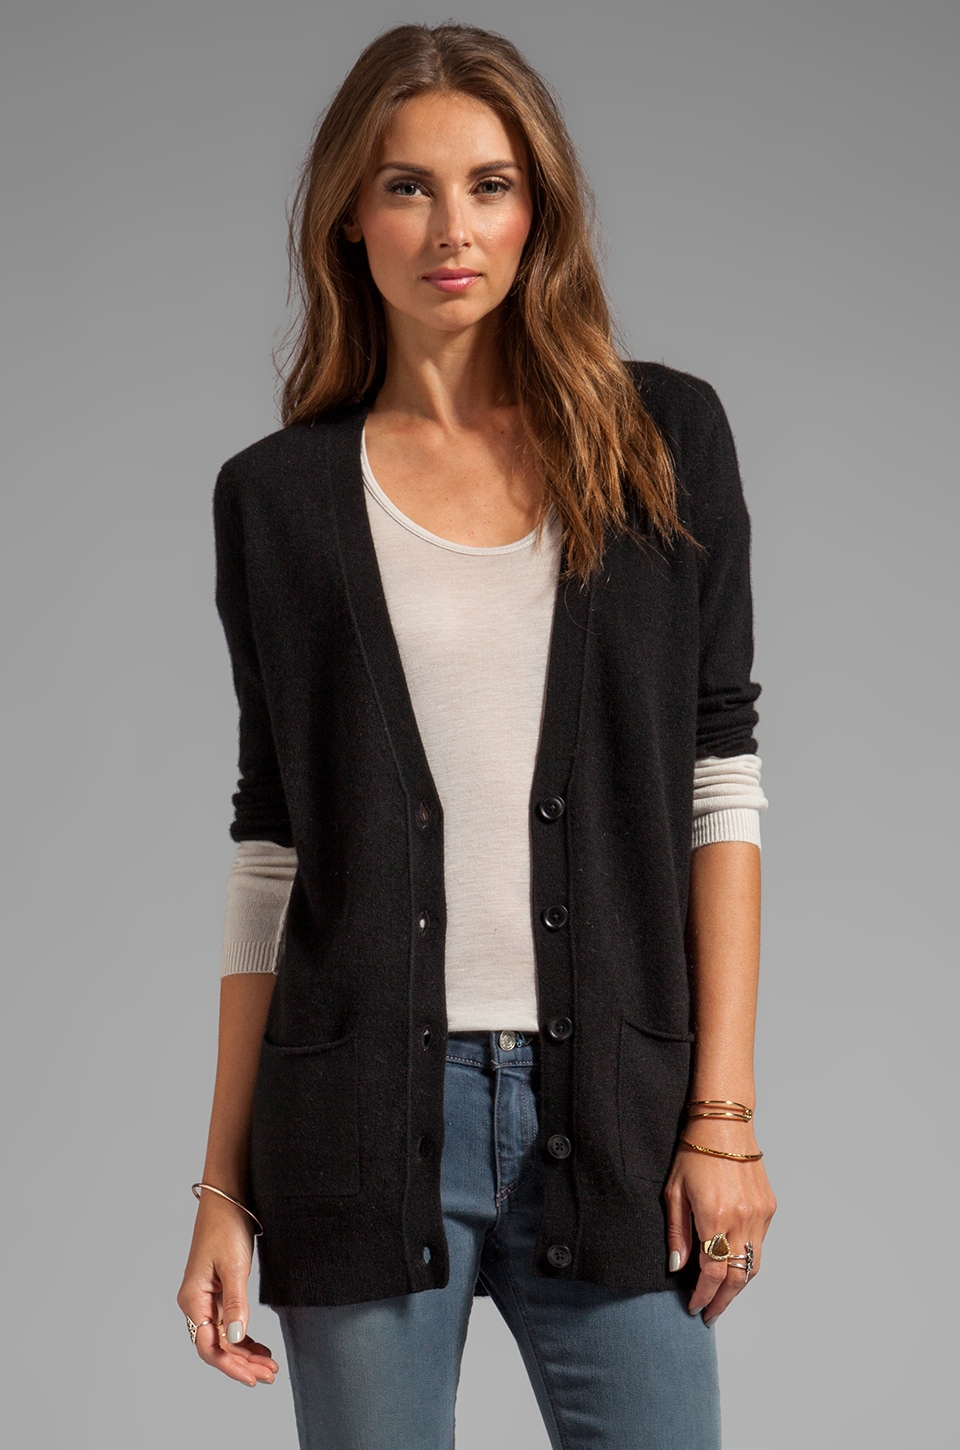 360CASHMERE Shana Cashmere Cardigan in Black/Chalk